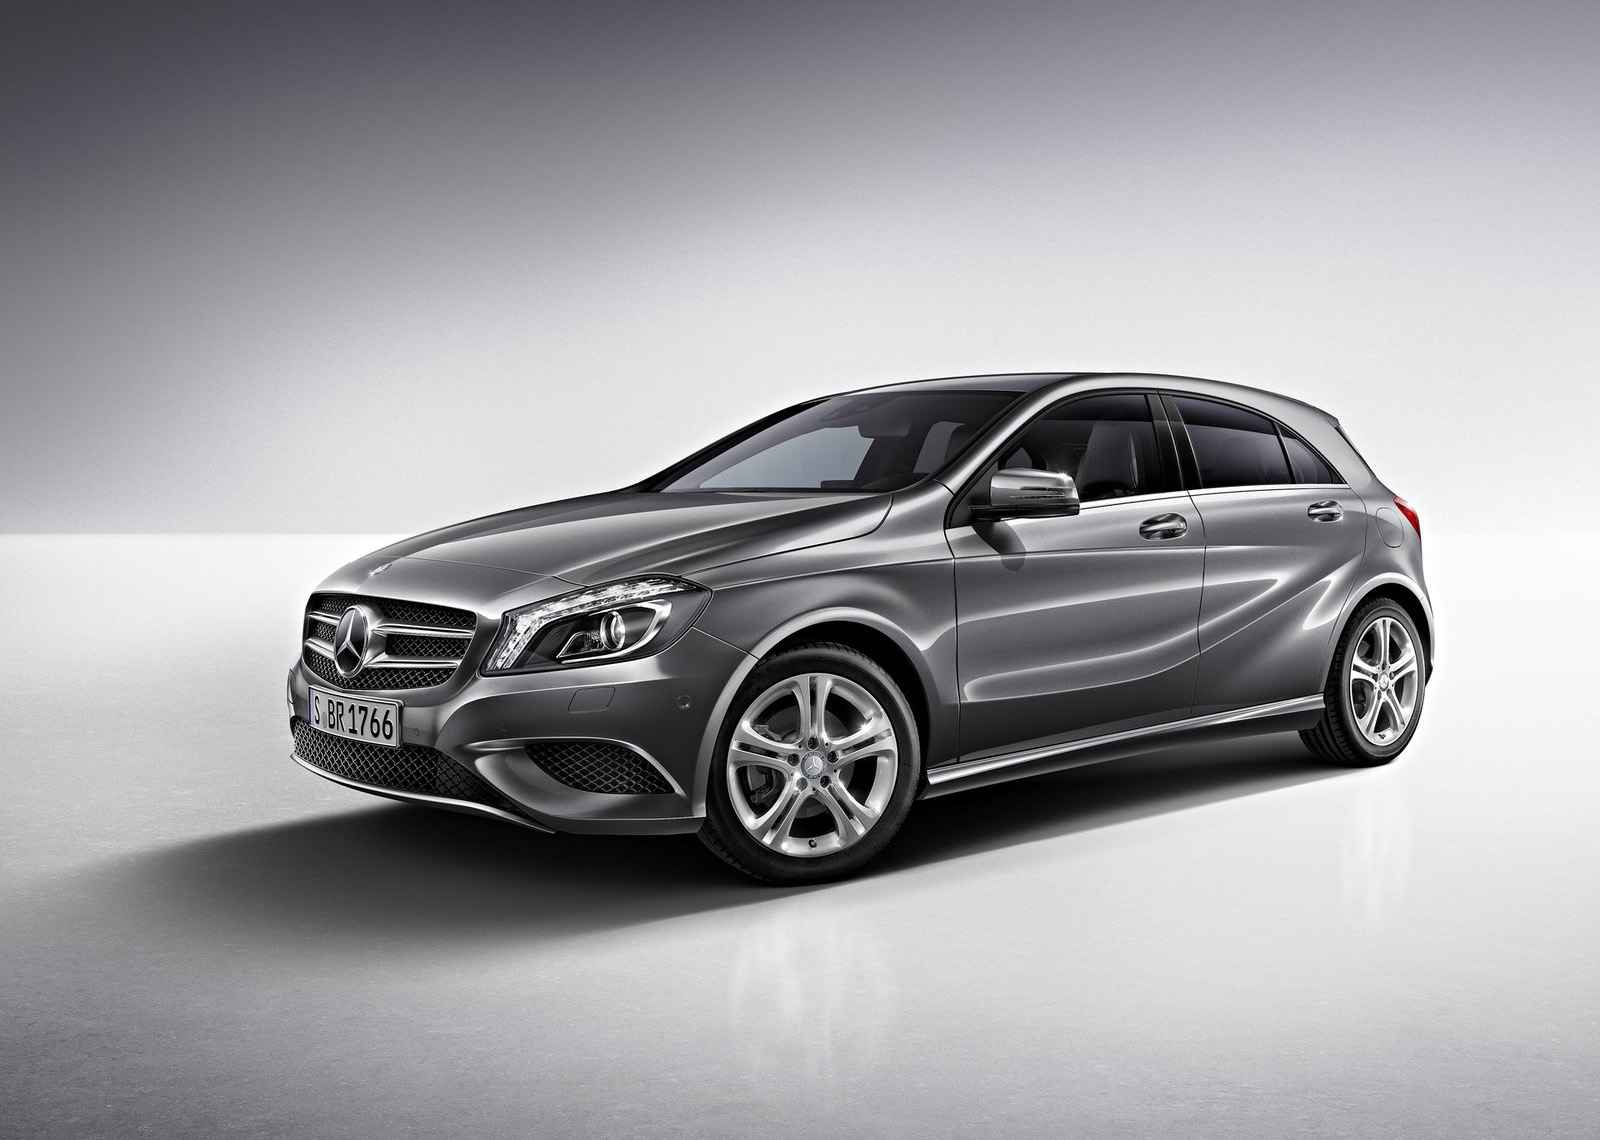 2015 mercedes a serisi a 180 amg g ncel fiyatlar uygun ta t. Black Bedroom Furniture Sets. Home Design Ideas